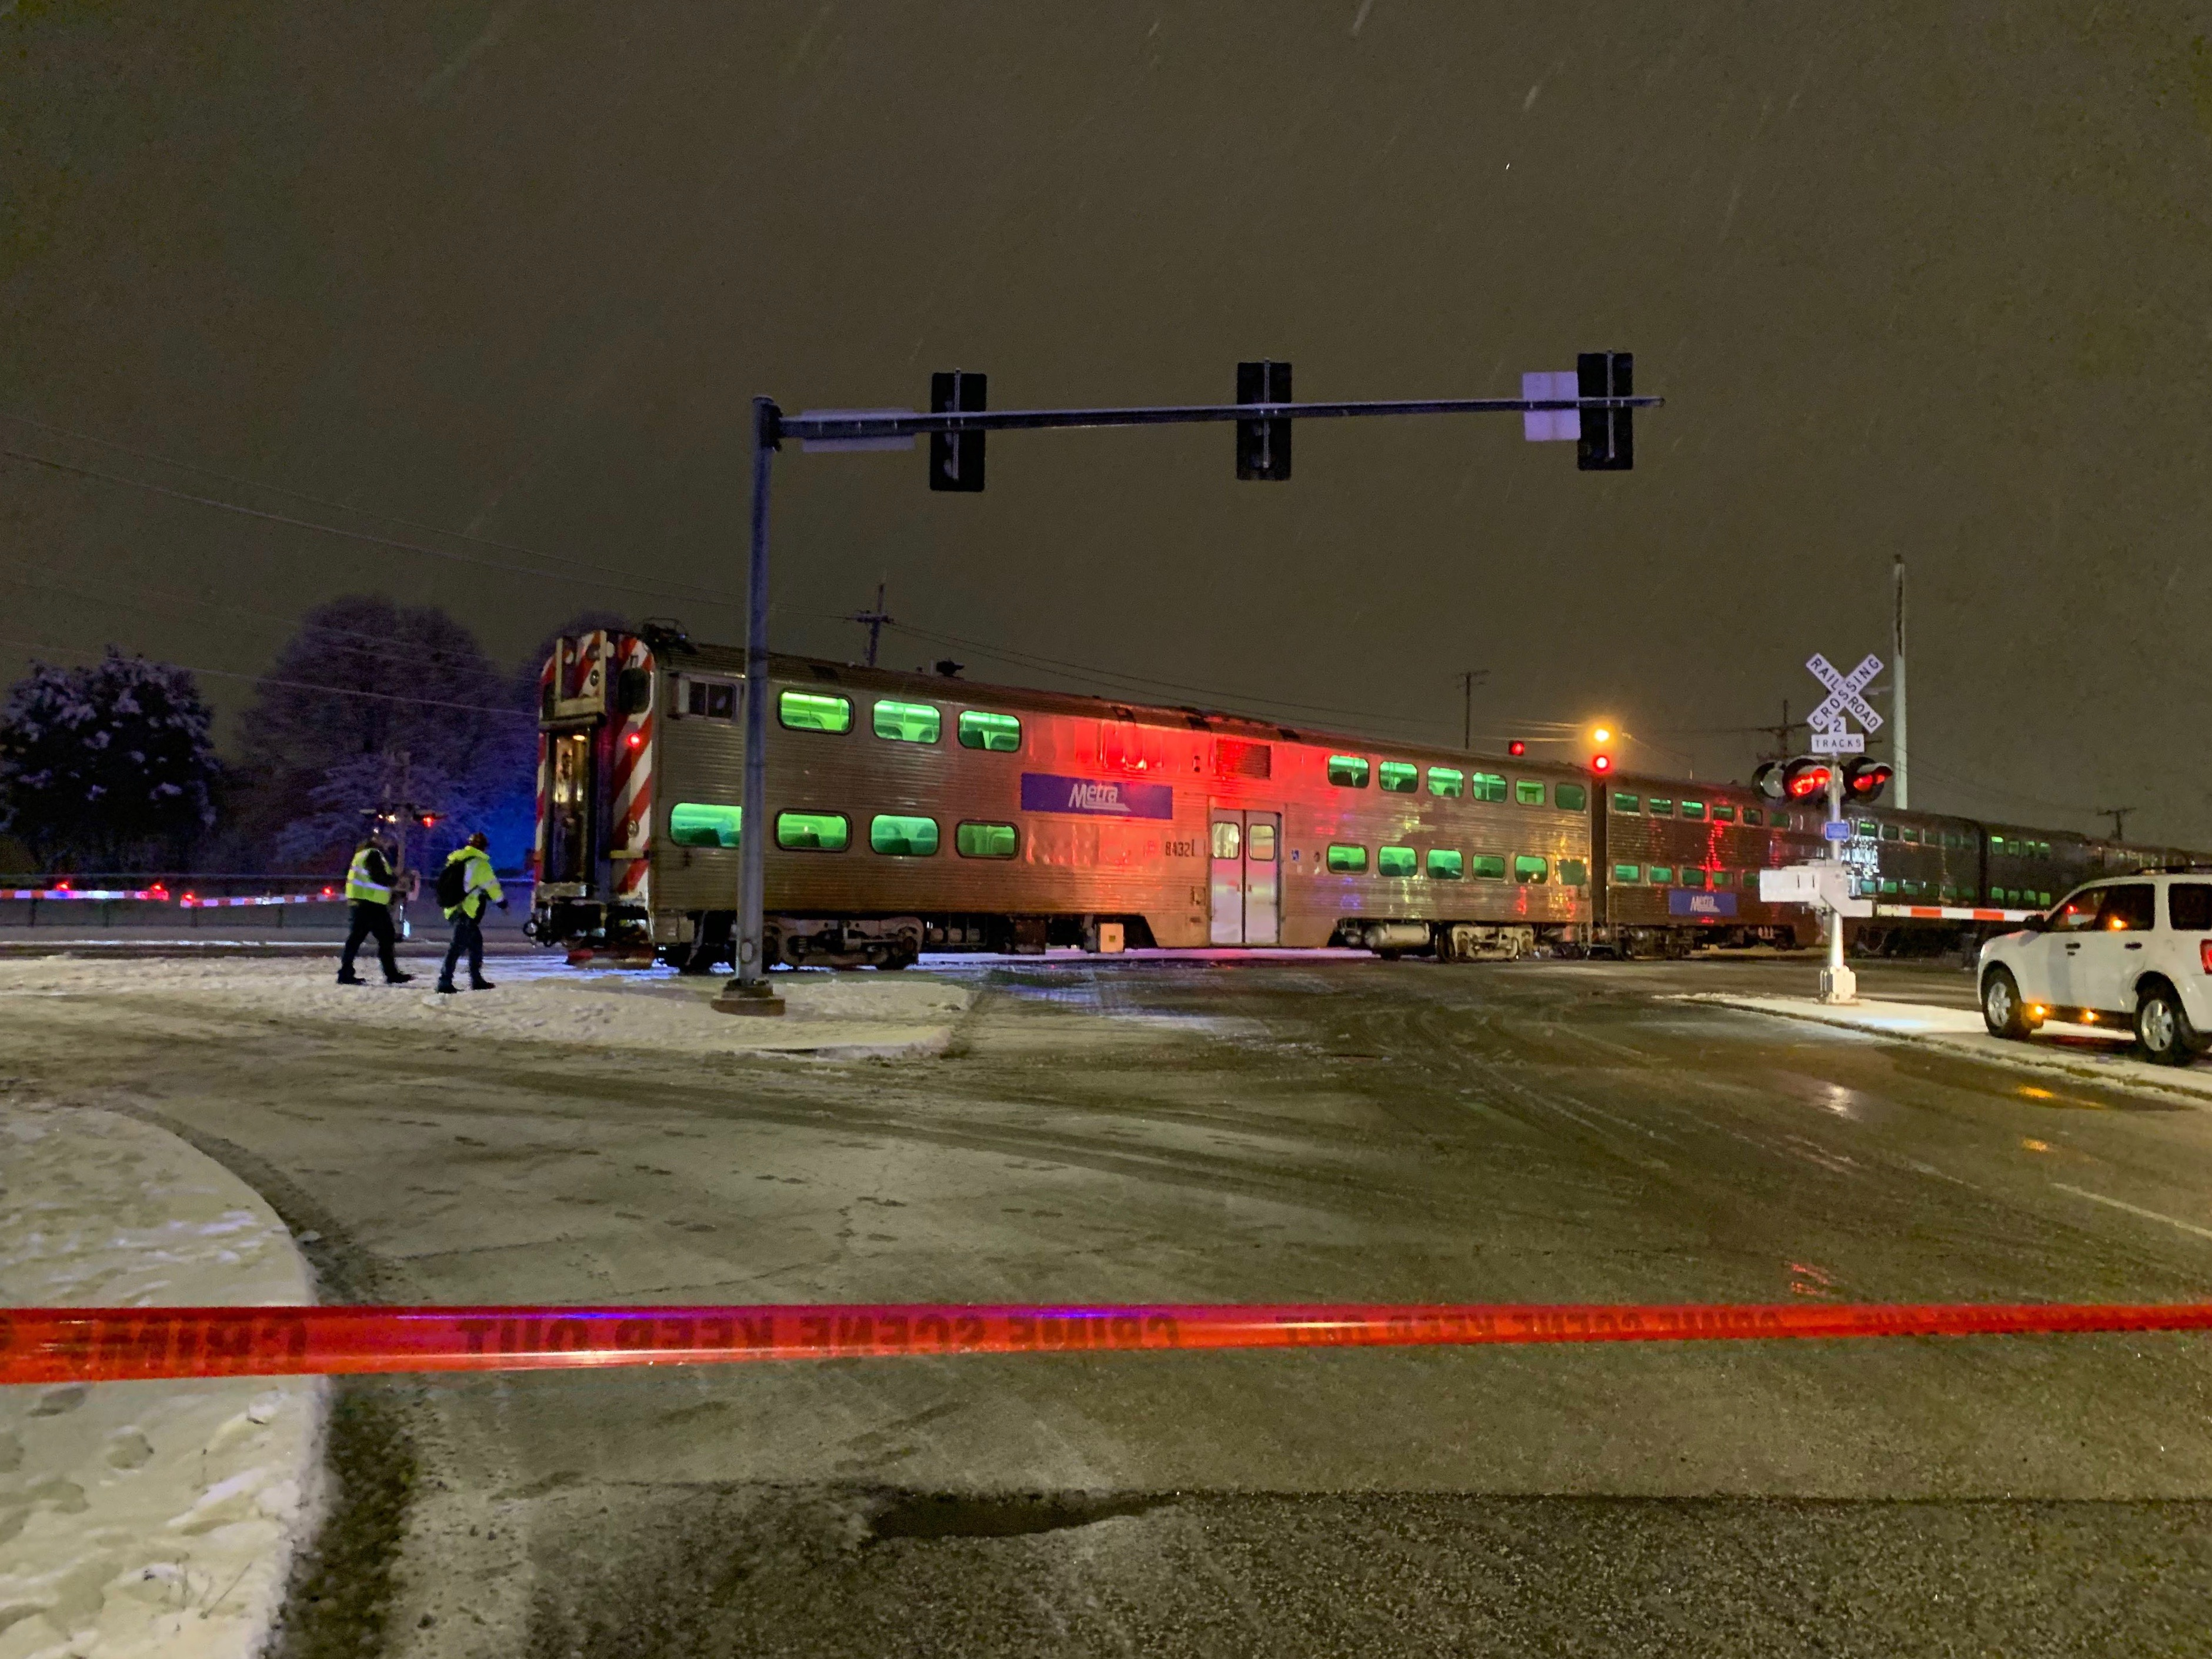 A Metra train hit a vehicle in Scottsdale on the Southwest Side